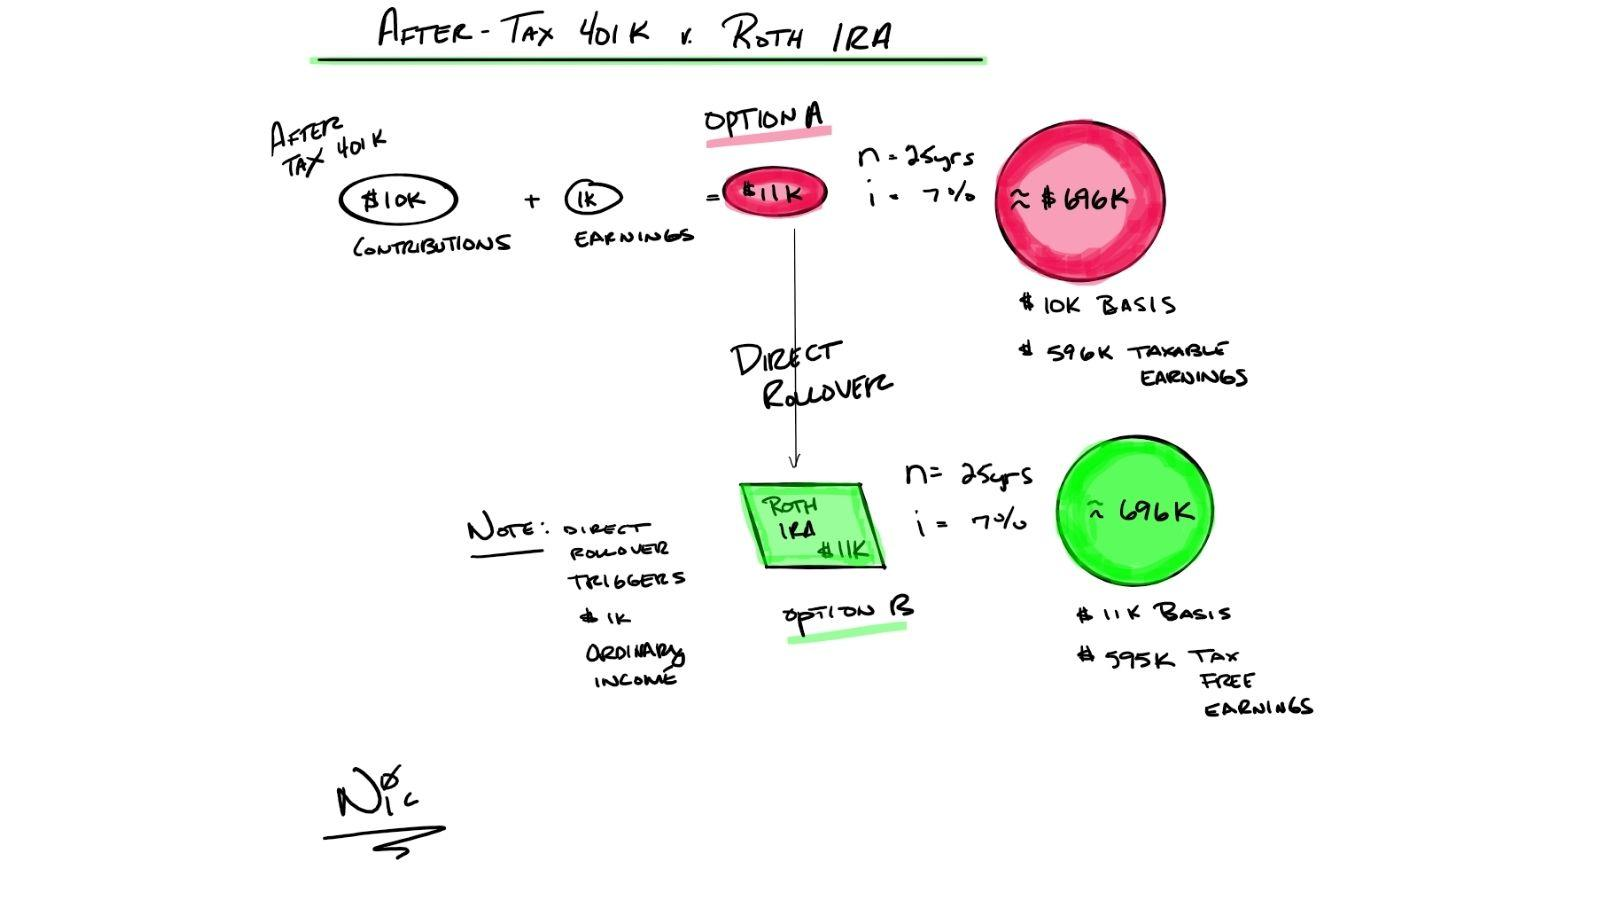 roth ira and aftertax 401k